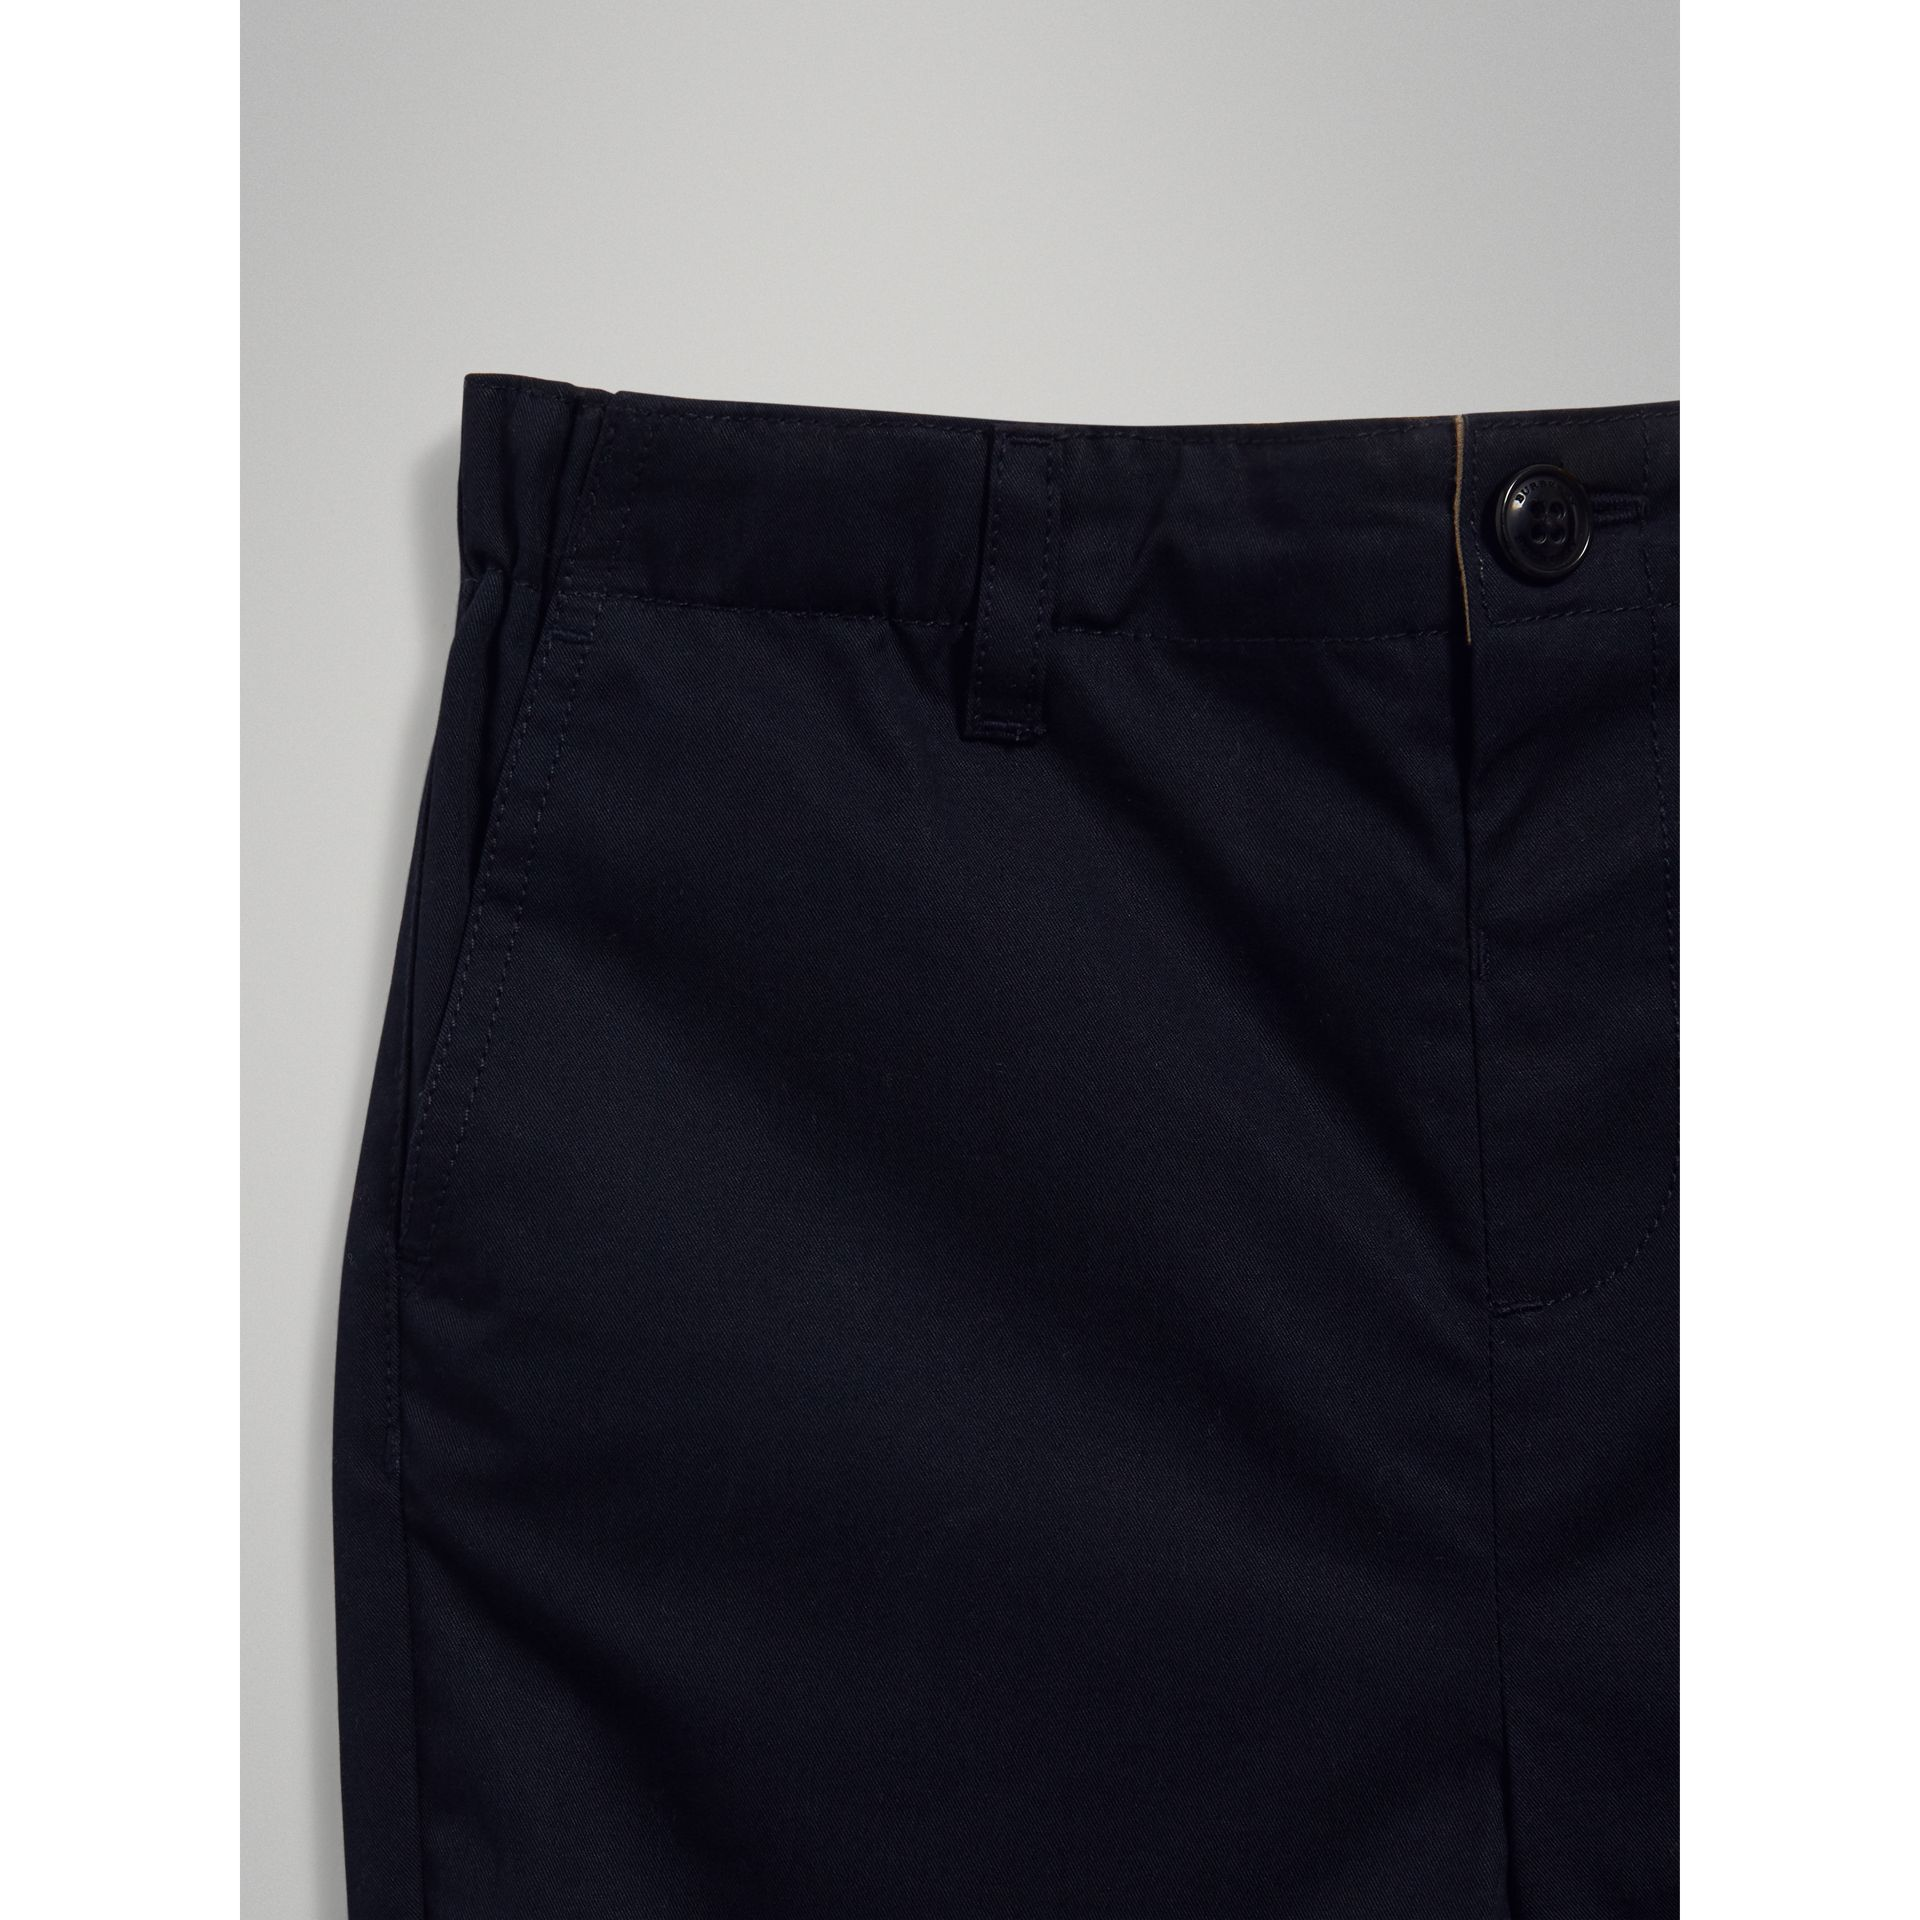 Short chino en coton (Encre) | Burberry - photo de la galerie 4